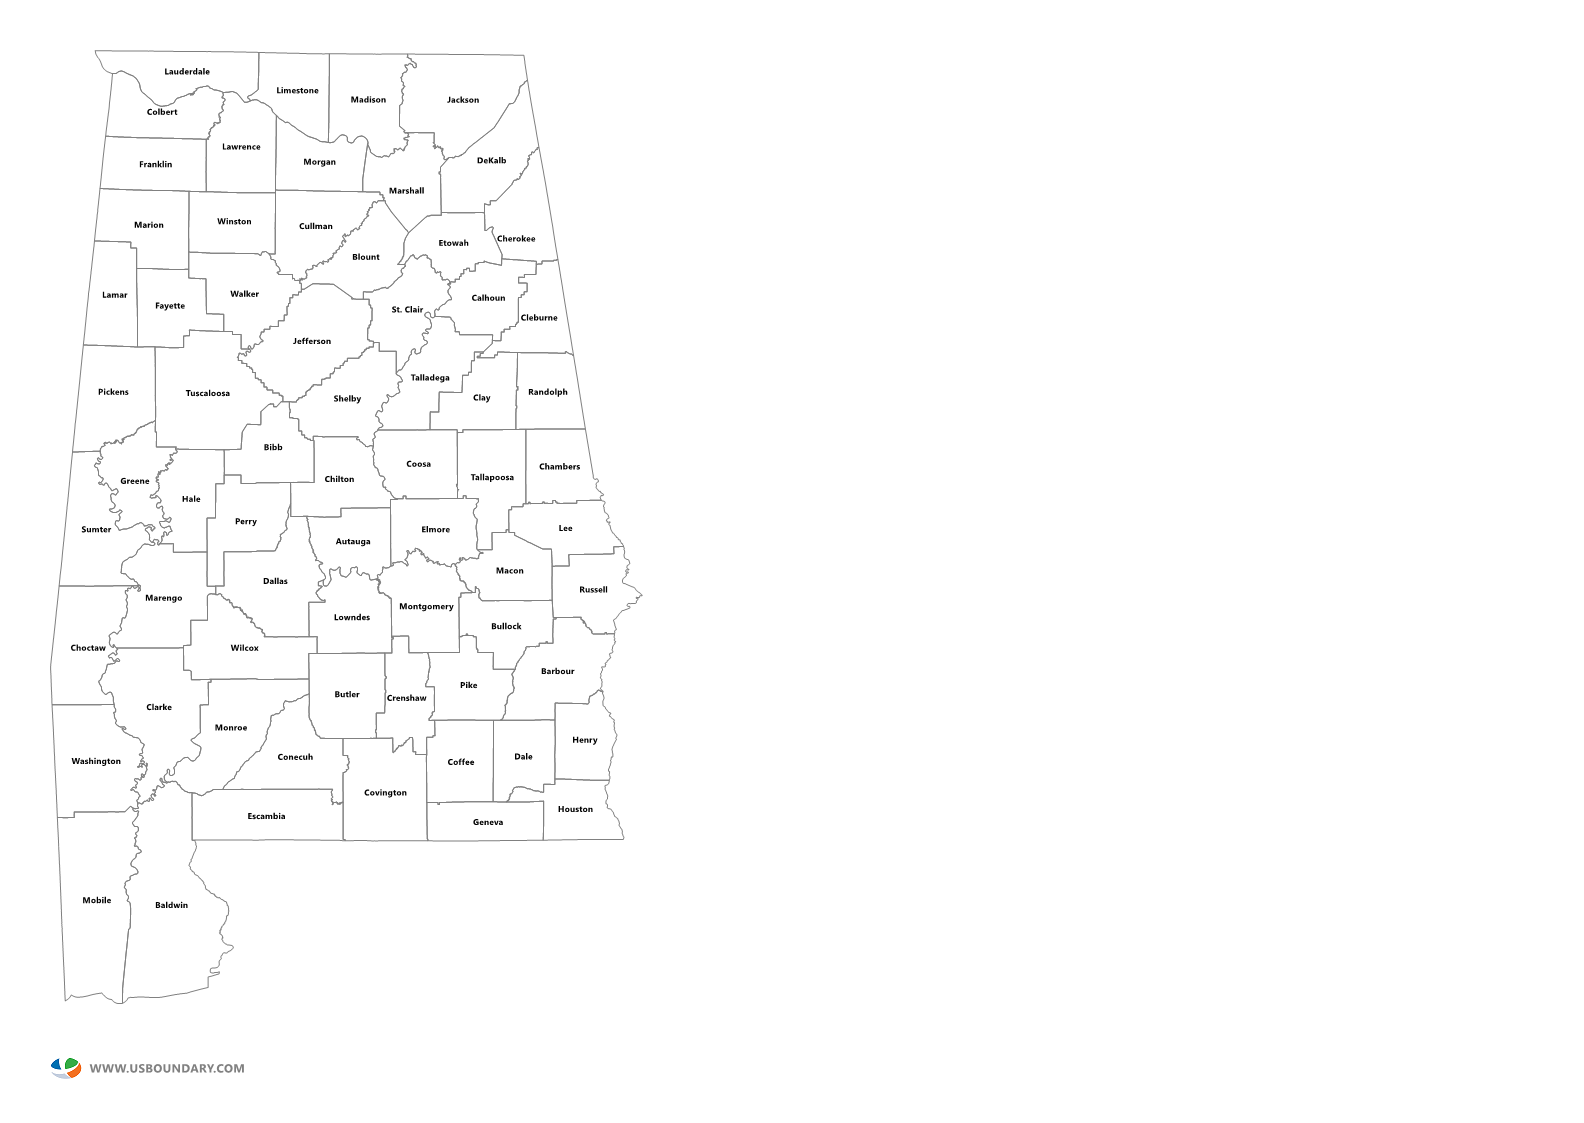 Alabama State Map By County.State Counties Maps Download